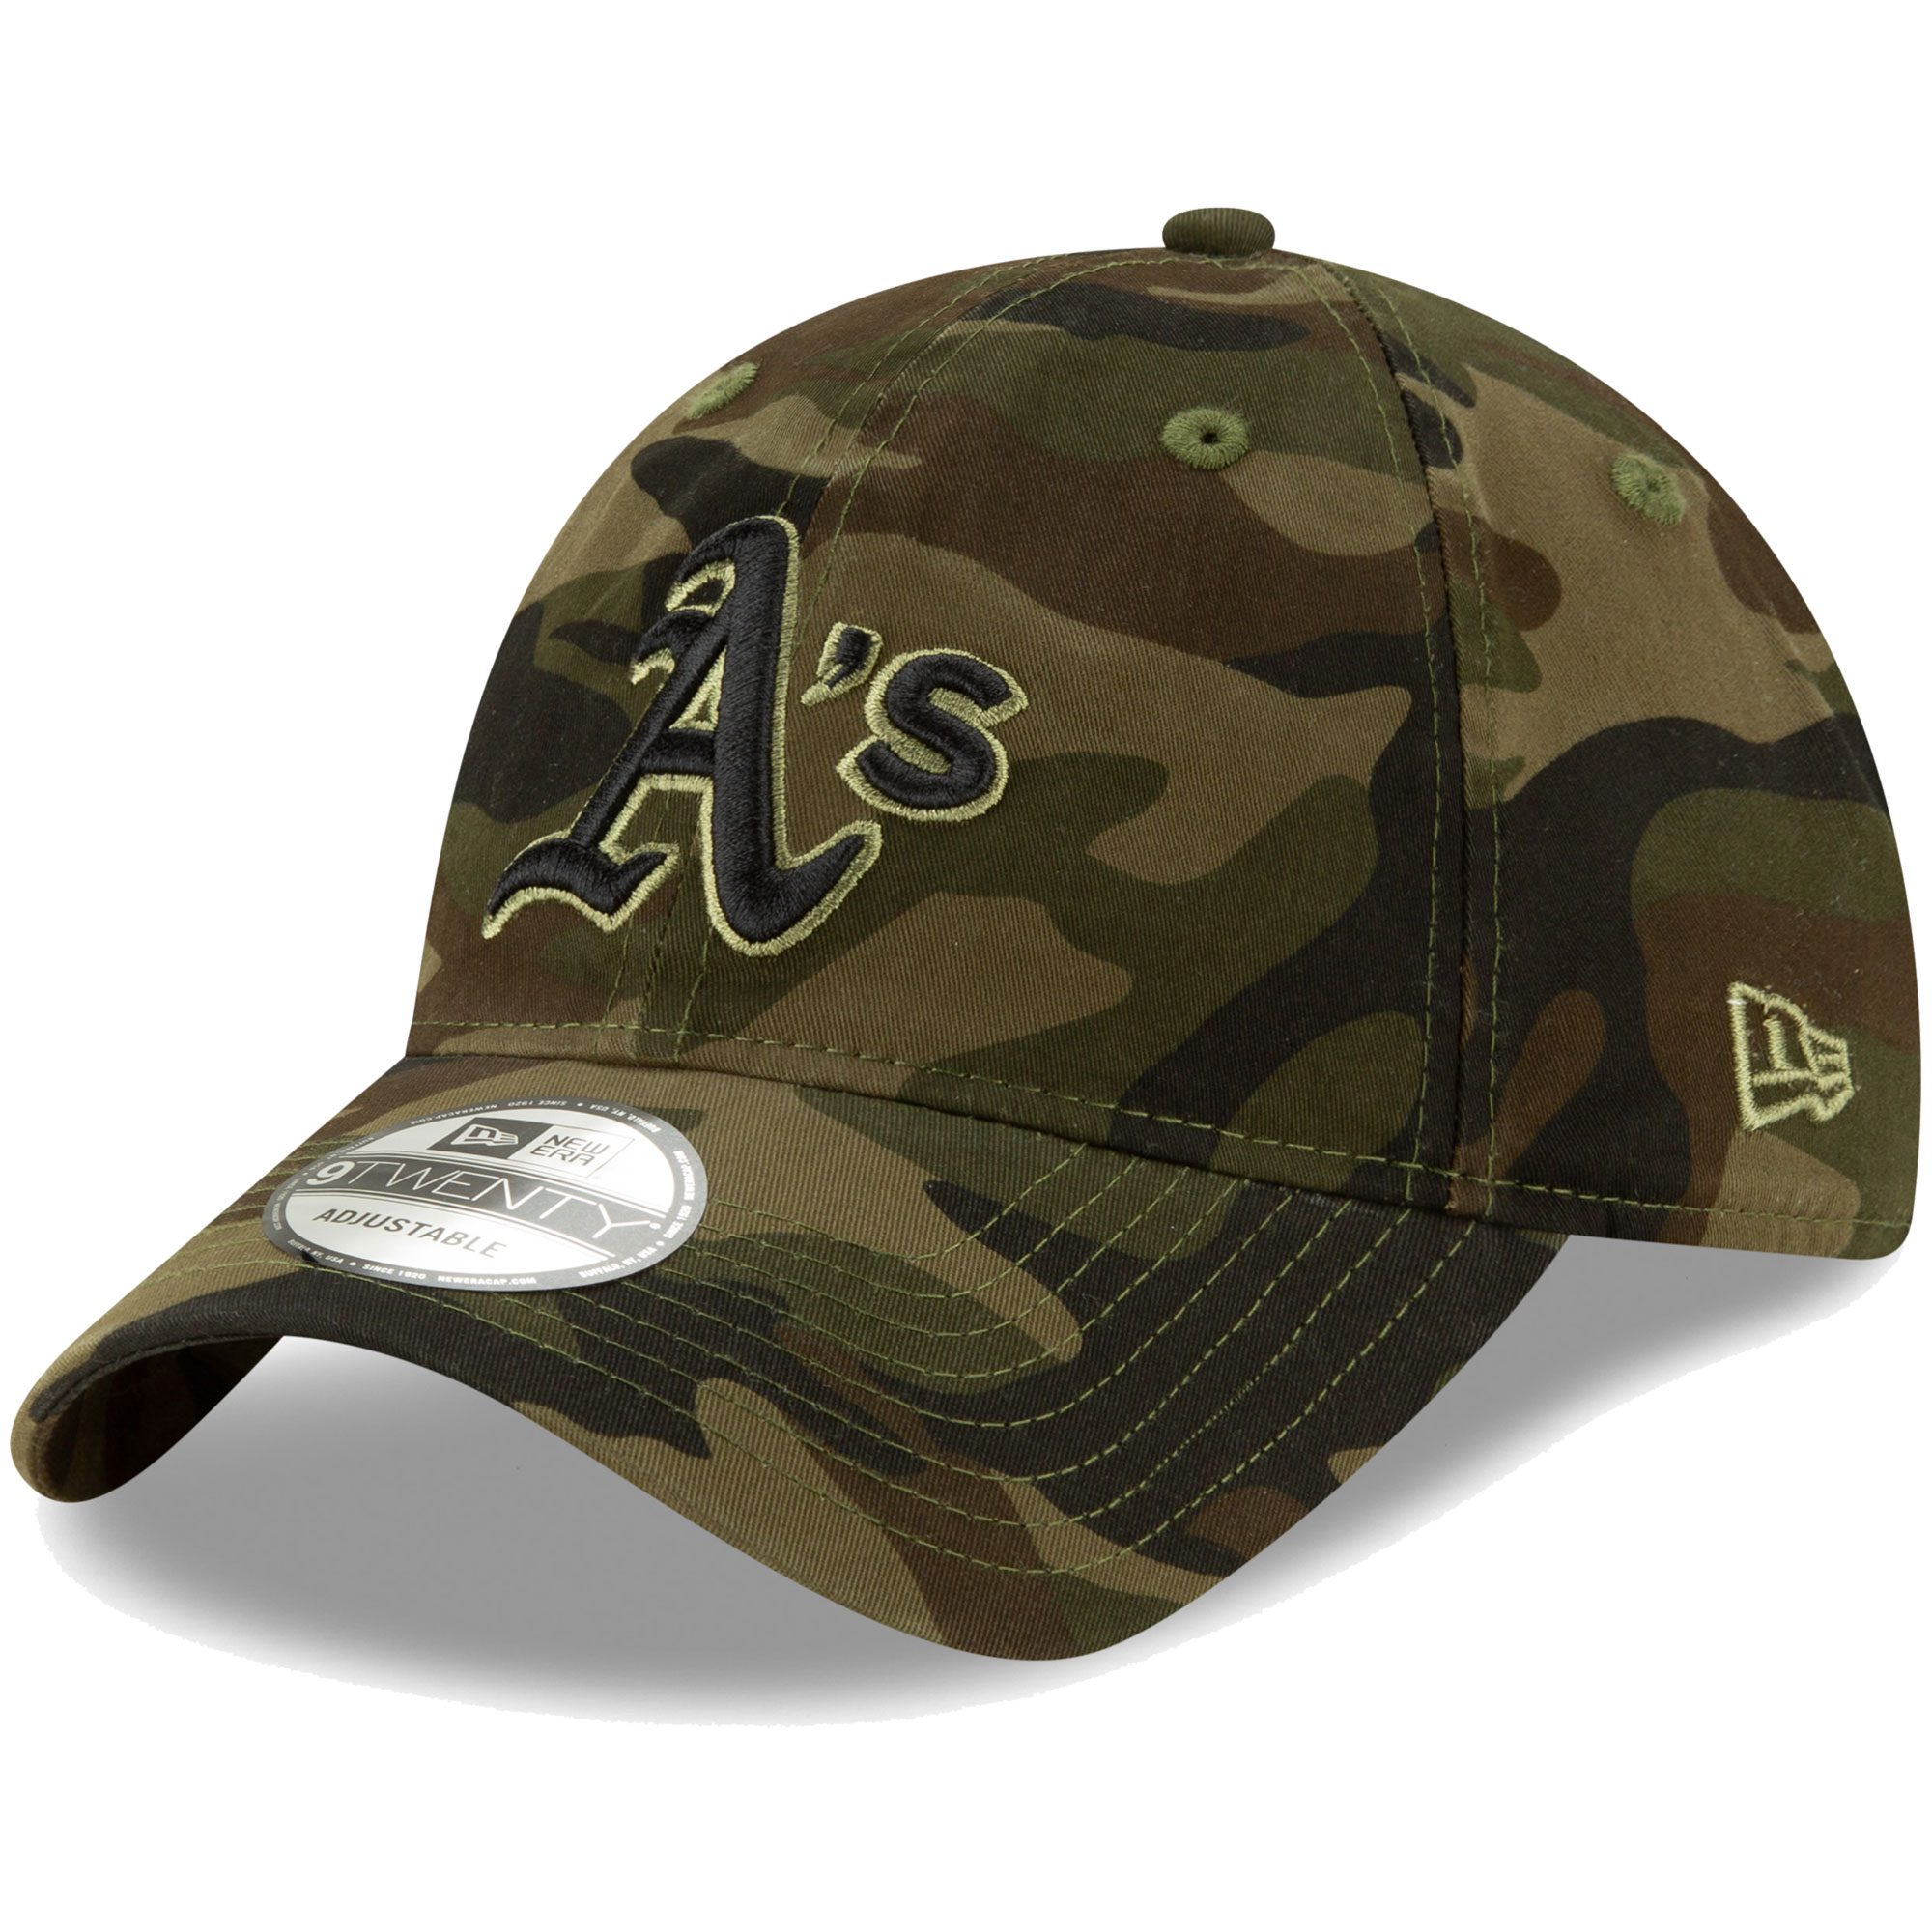 Oakland Athletics New Era Tonal Camo Core Classic 9TWENTY Adjustable Hat - Camo - OSFA